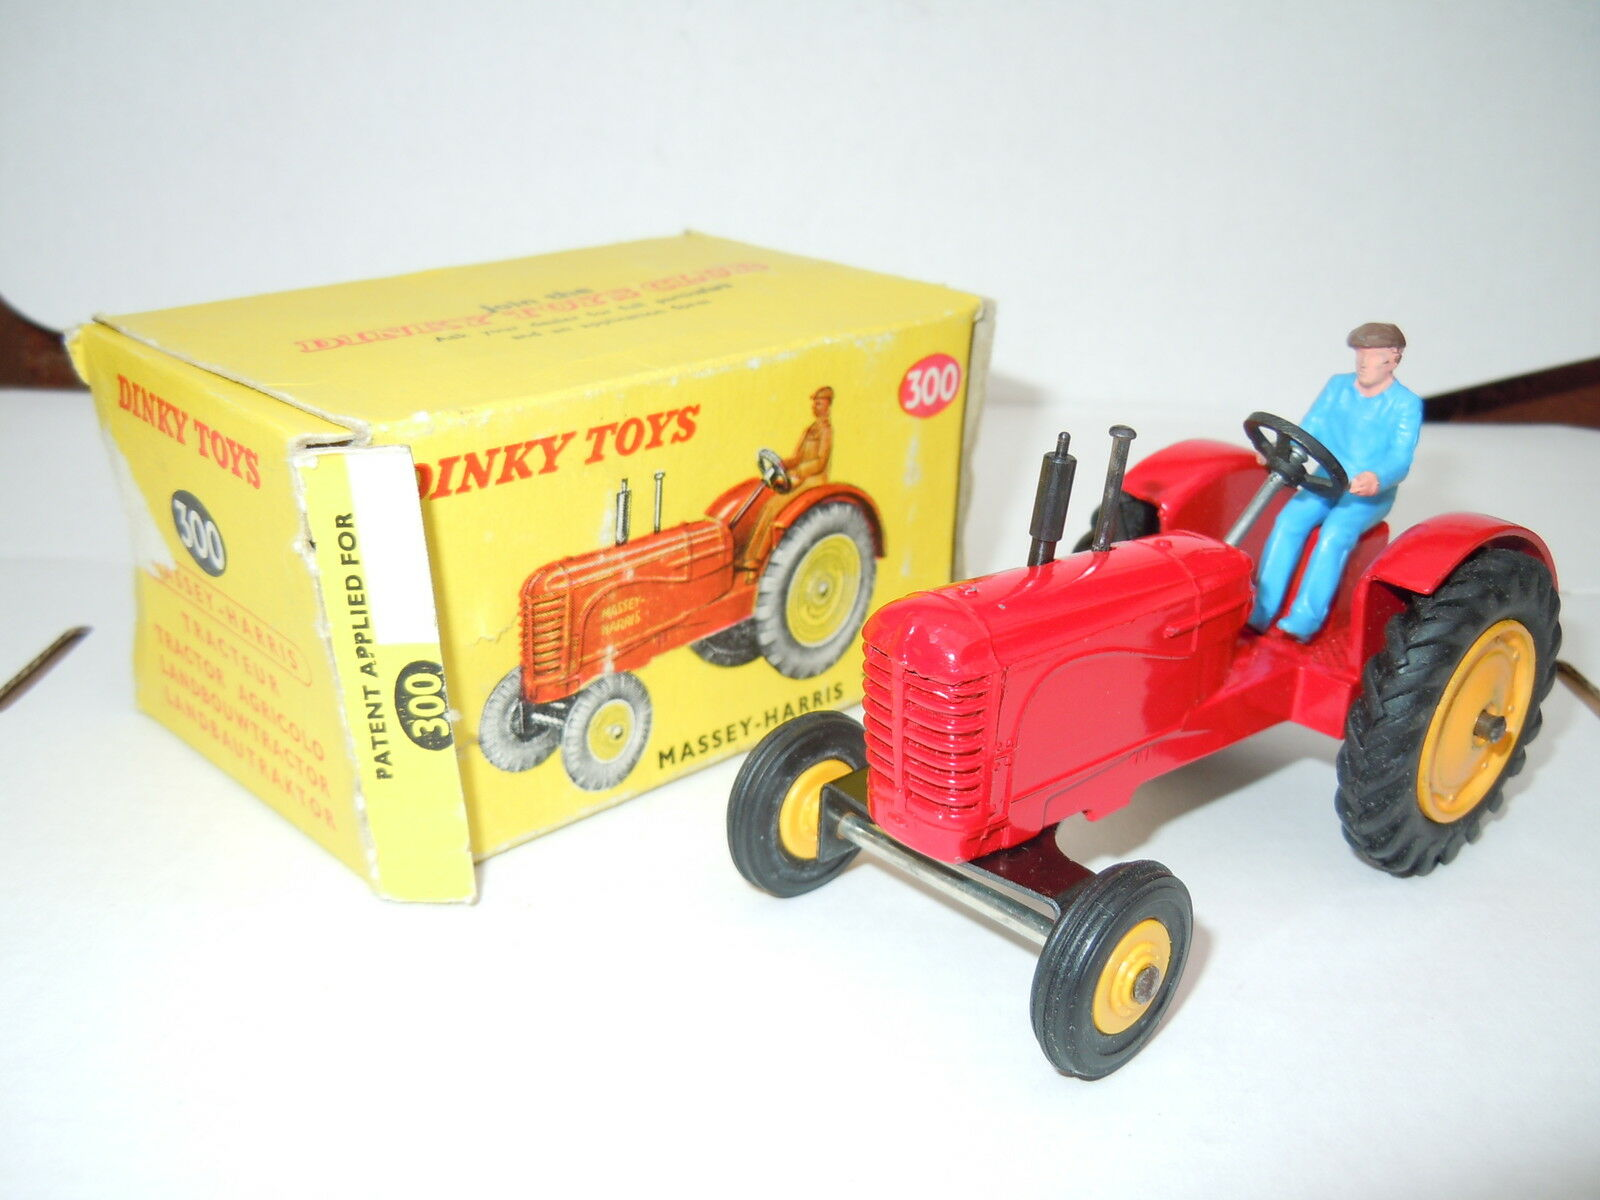 Dinky MASSEY HARRIS TRACTOR - 300 early production with rare tagged box